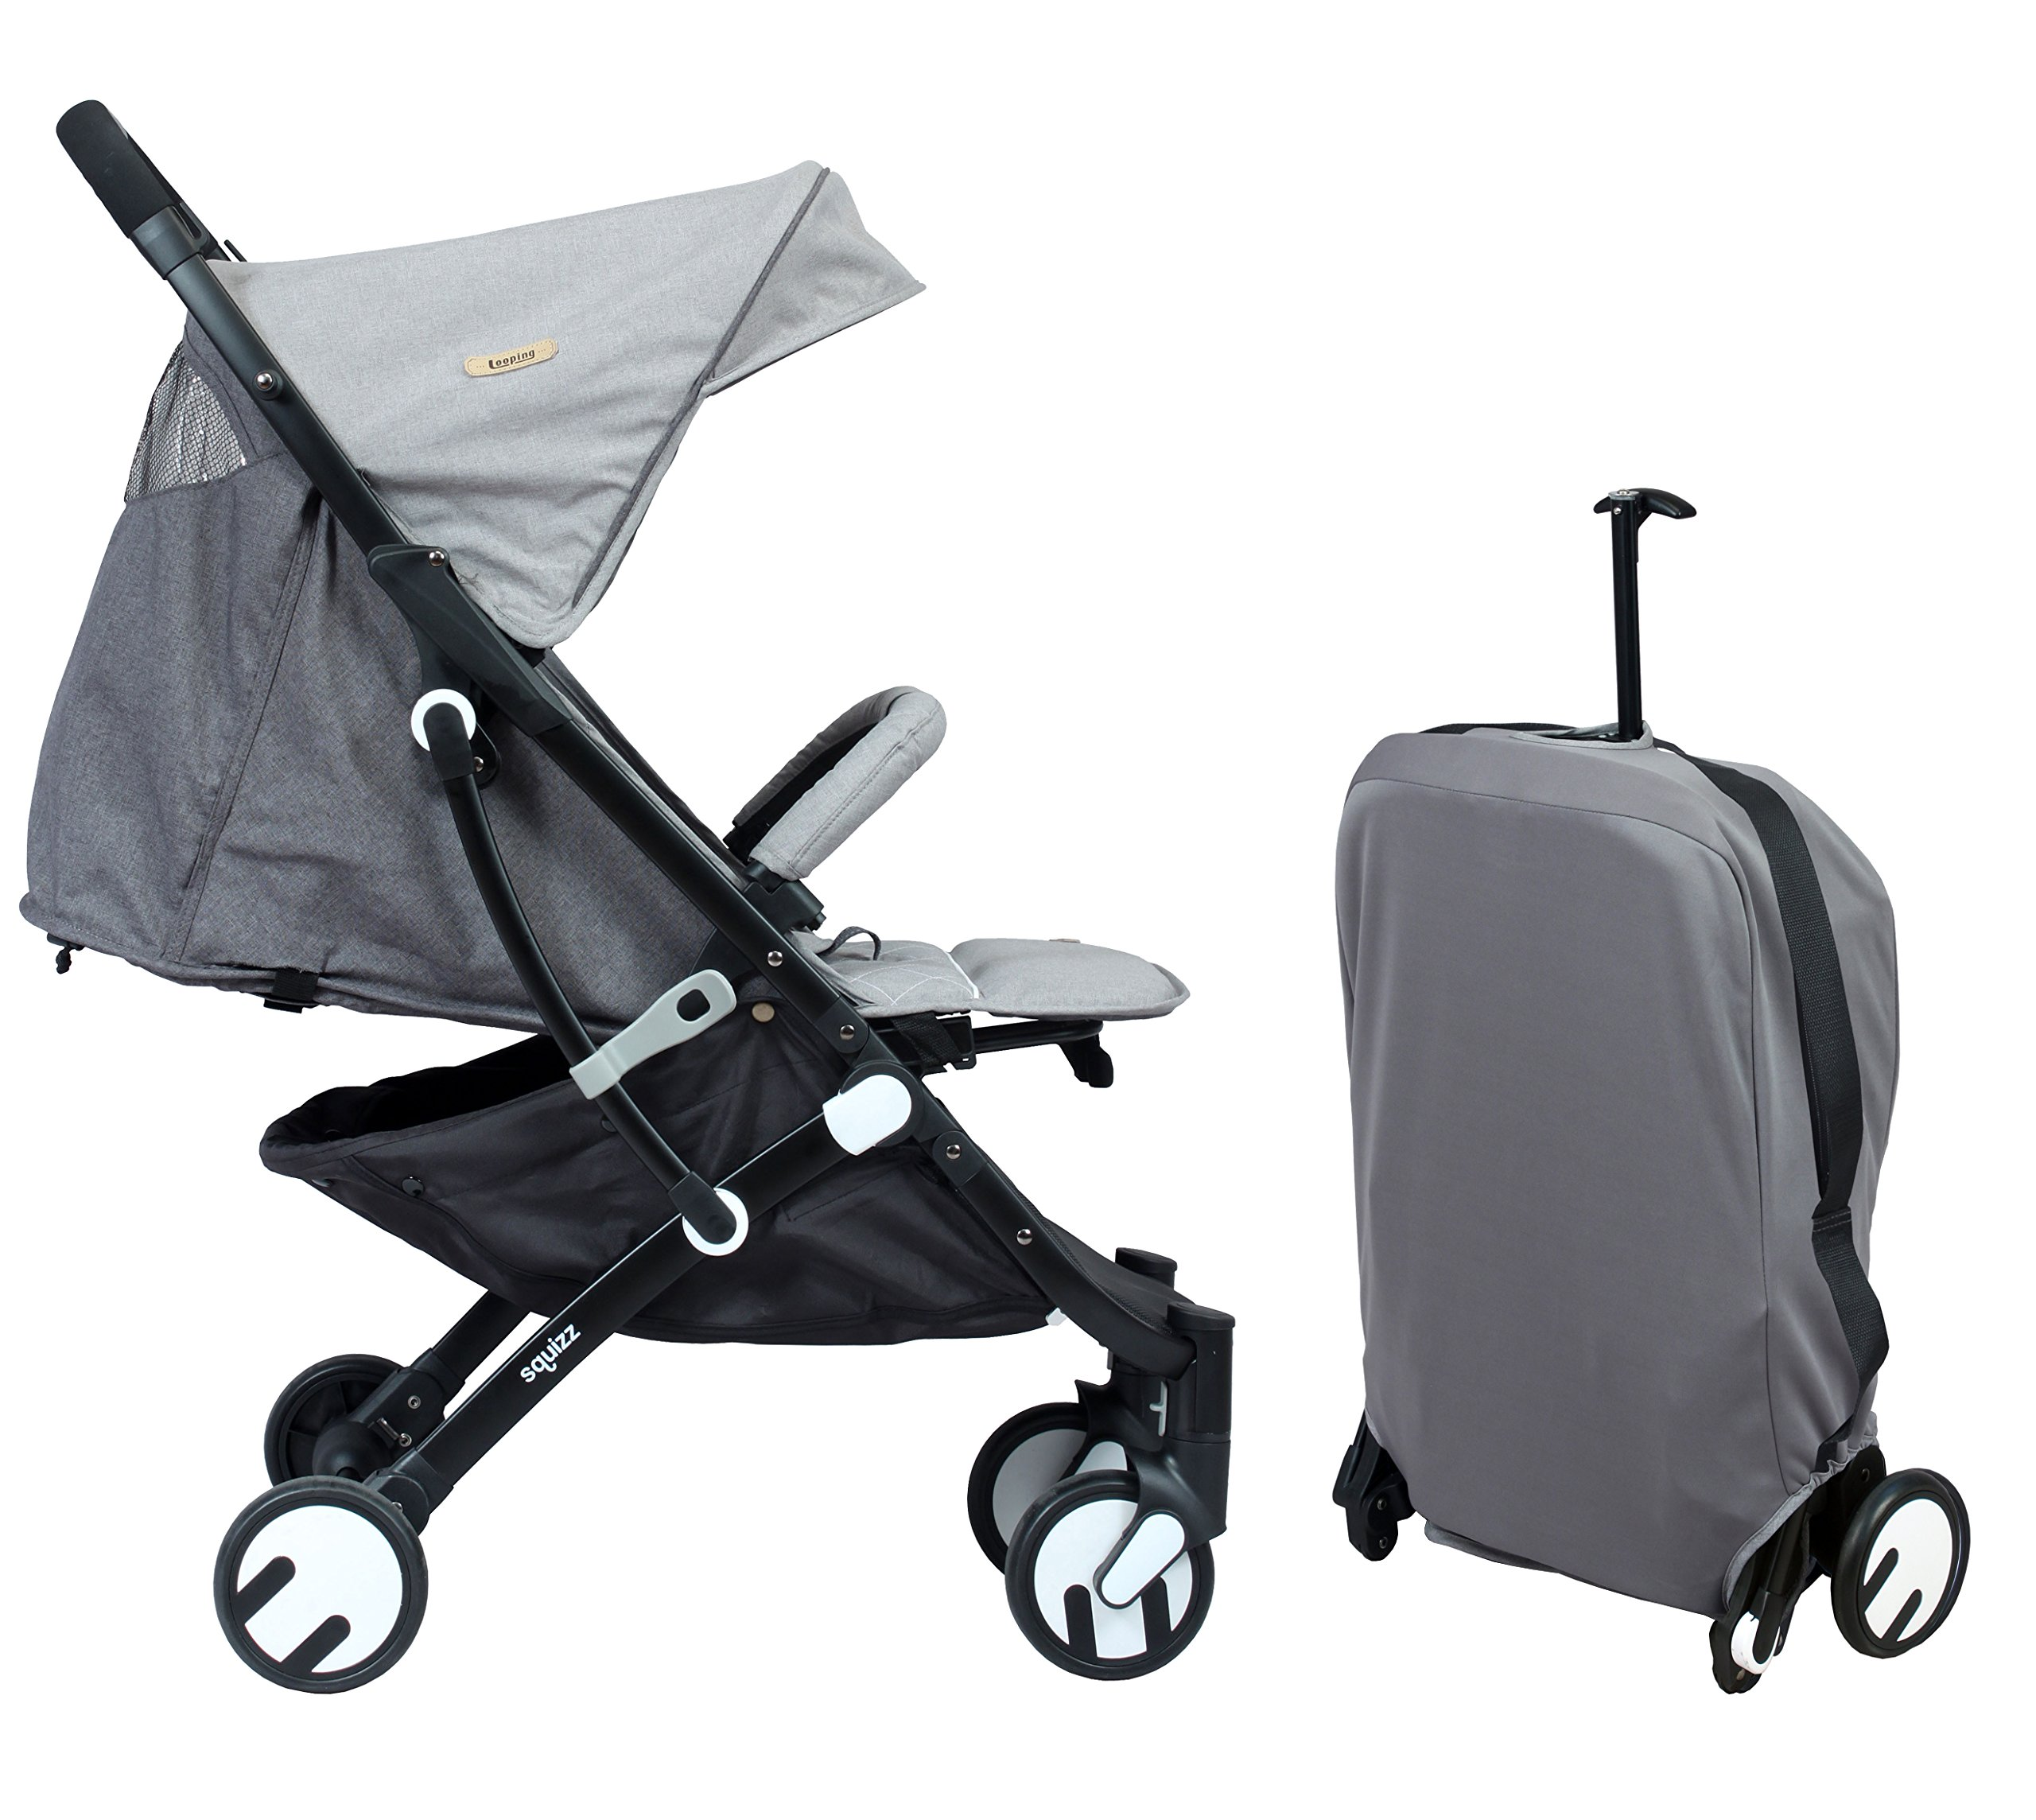 LOOPING Poussette compacte Squizz 2 Z15 - Gris chiné Looping Very compact babies's pushchair from birth up to 15kg. Smart pull-along handle that enables you to pull the pushchair. Folds up and unfolds with one hand. Large canopy to better protect your baby- Removable and opening bumper bar to keep your baby in place. 1